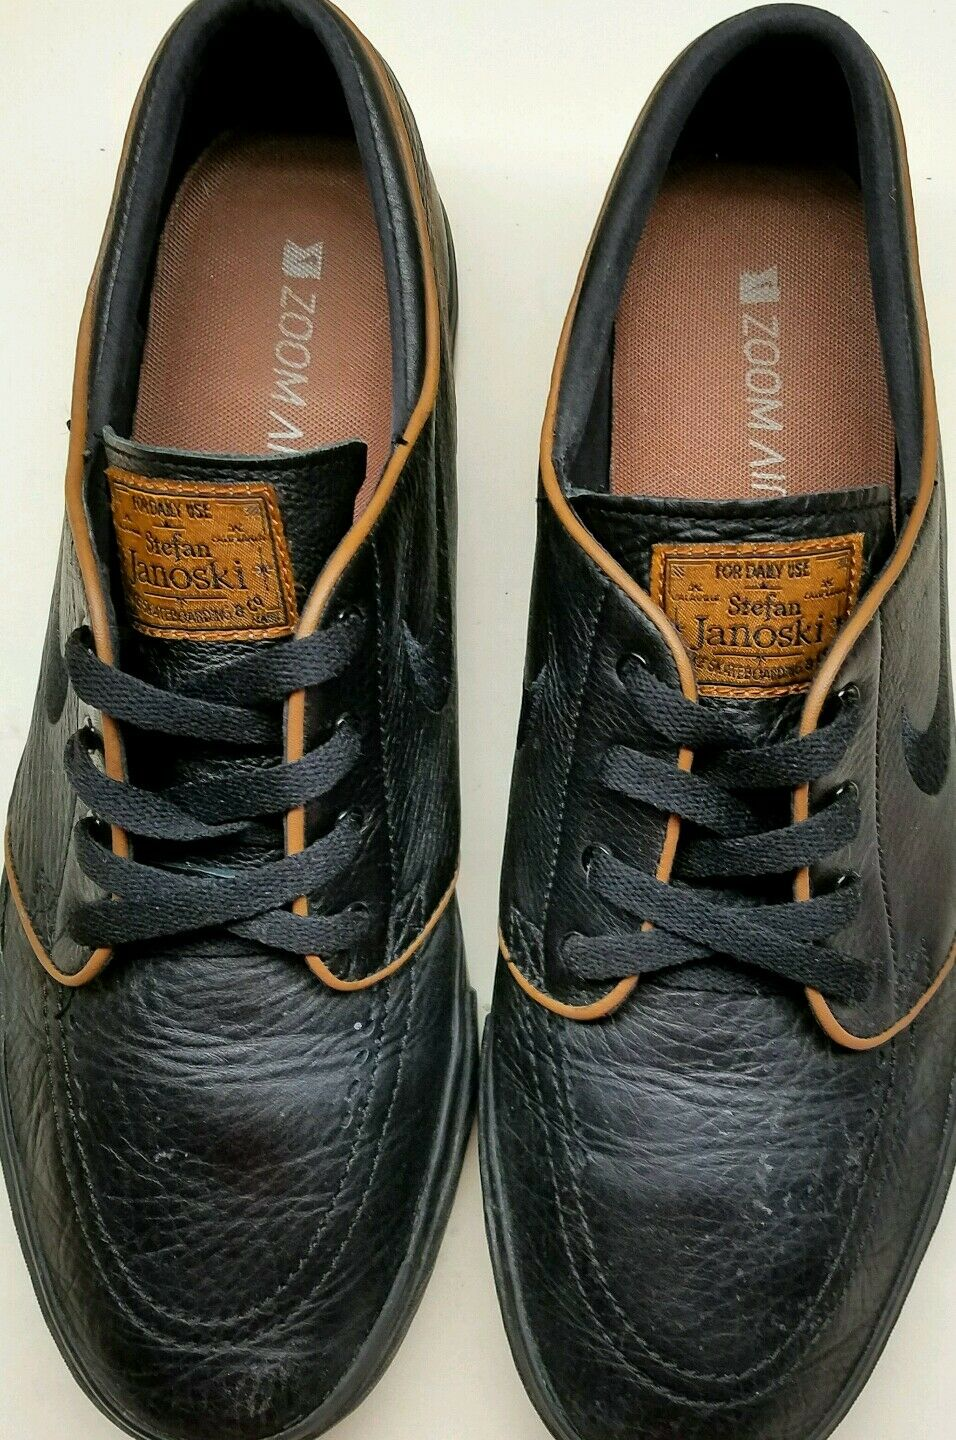 NIKE SB ZOOM STEFAN JANOSKI PREMIUM BLACK/PECAN  SIZE 11 1/2 New shoes for men and women, limited time discount